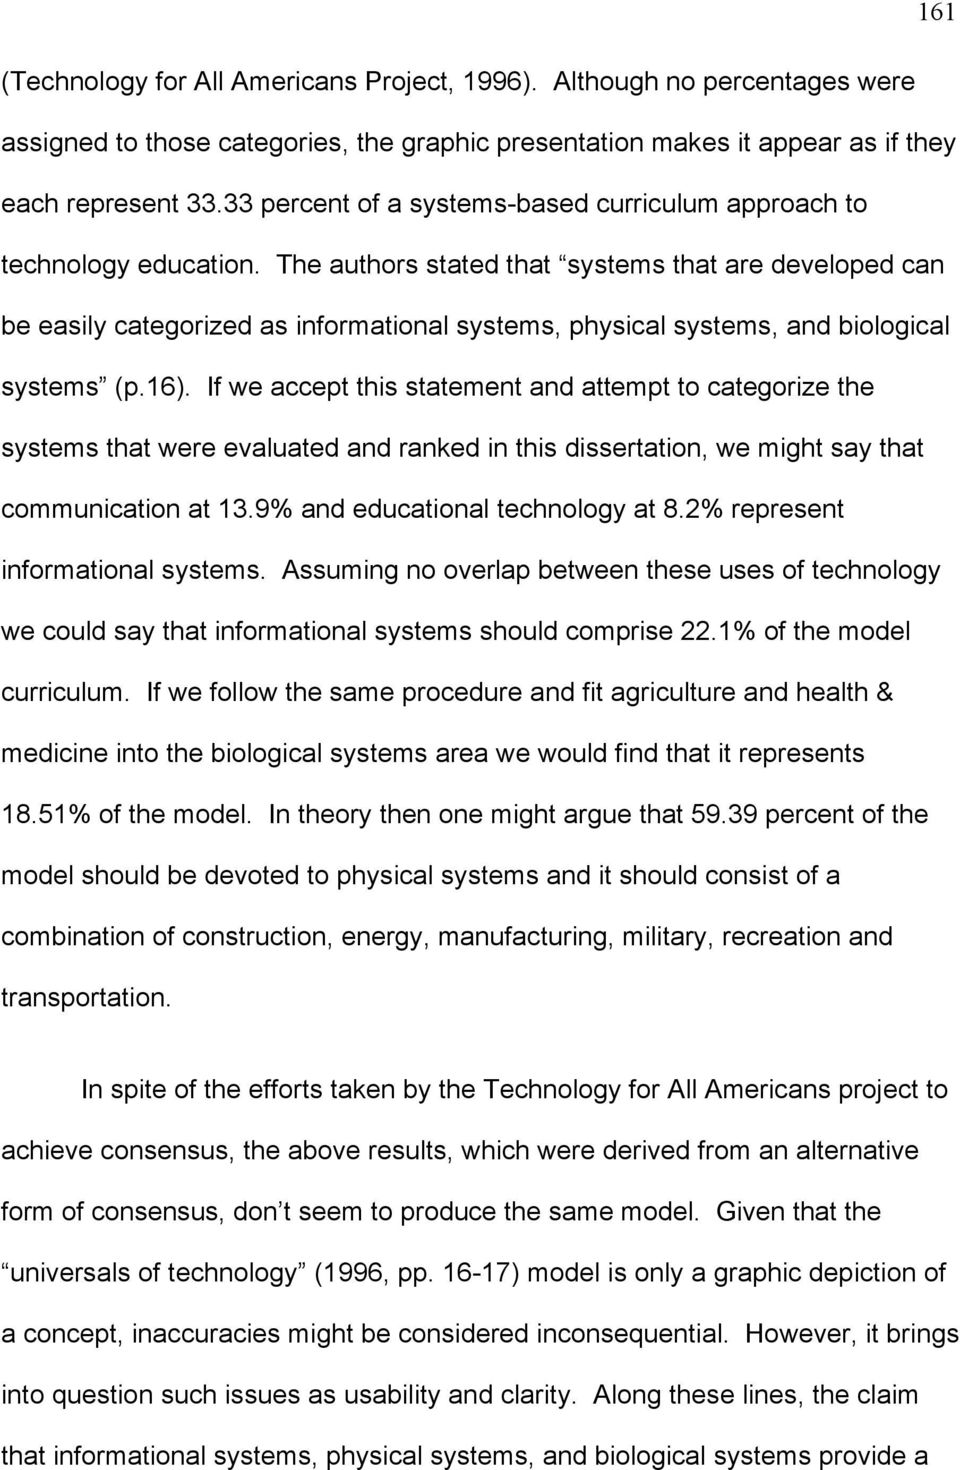 The authors stated that systems that are developed can be easily categorized as informational systems, physical systems, and biological systems (p.16).